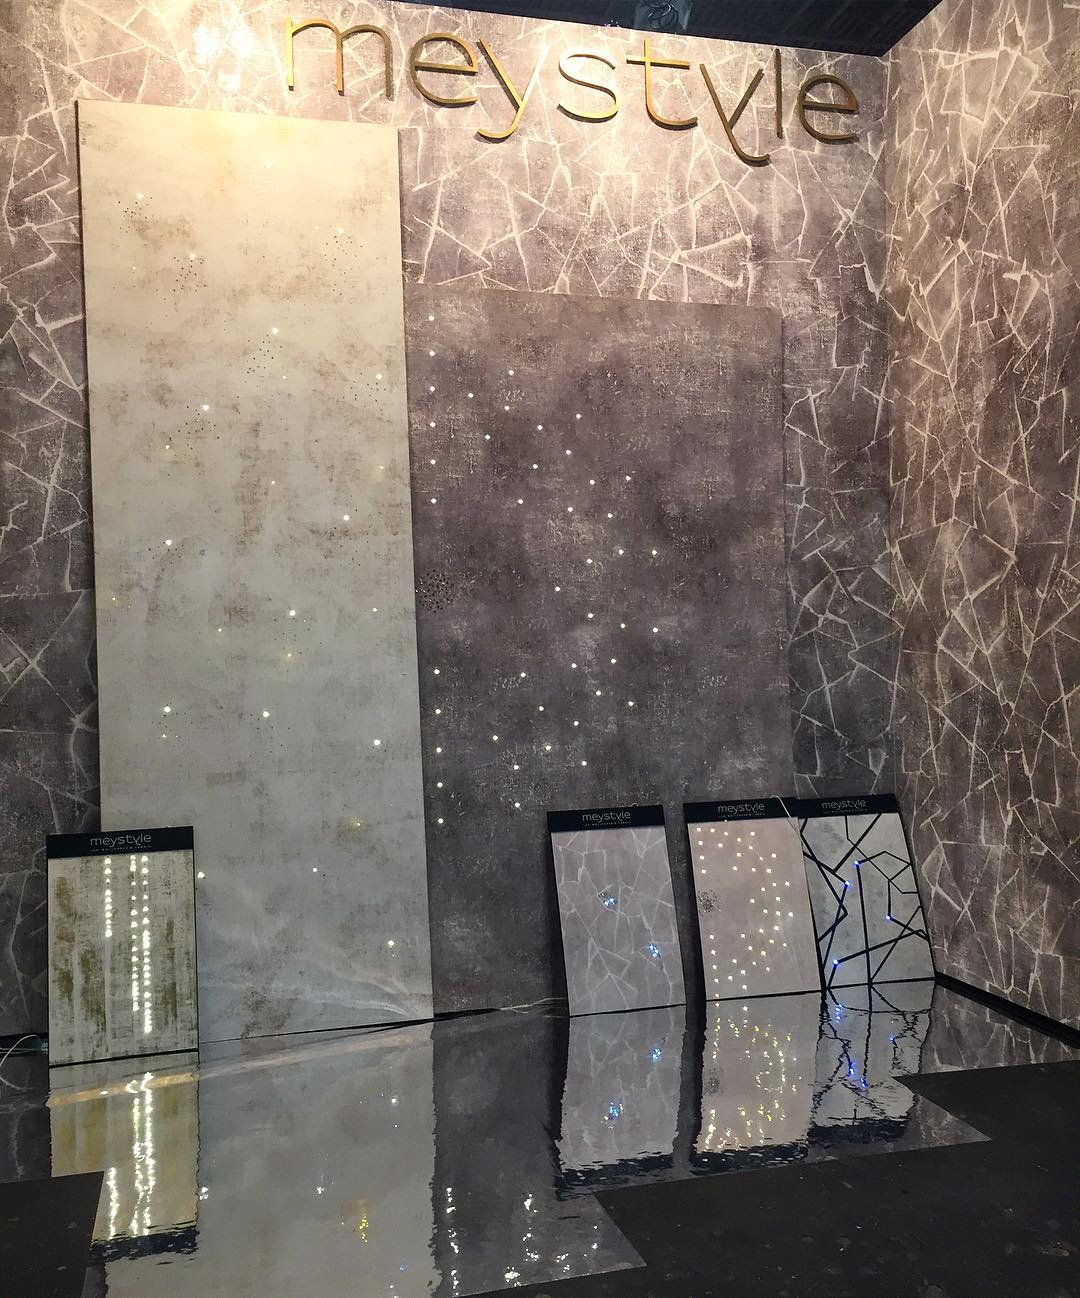 Top 5 Luxury Furniture Brands at ICFF 2017 luxury furniture brands Top 5 Luxury Furniture Brands at ICFF 2017 Meystyle1